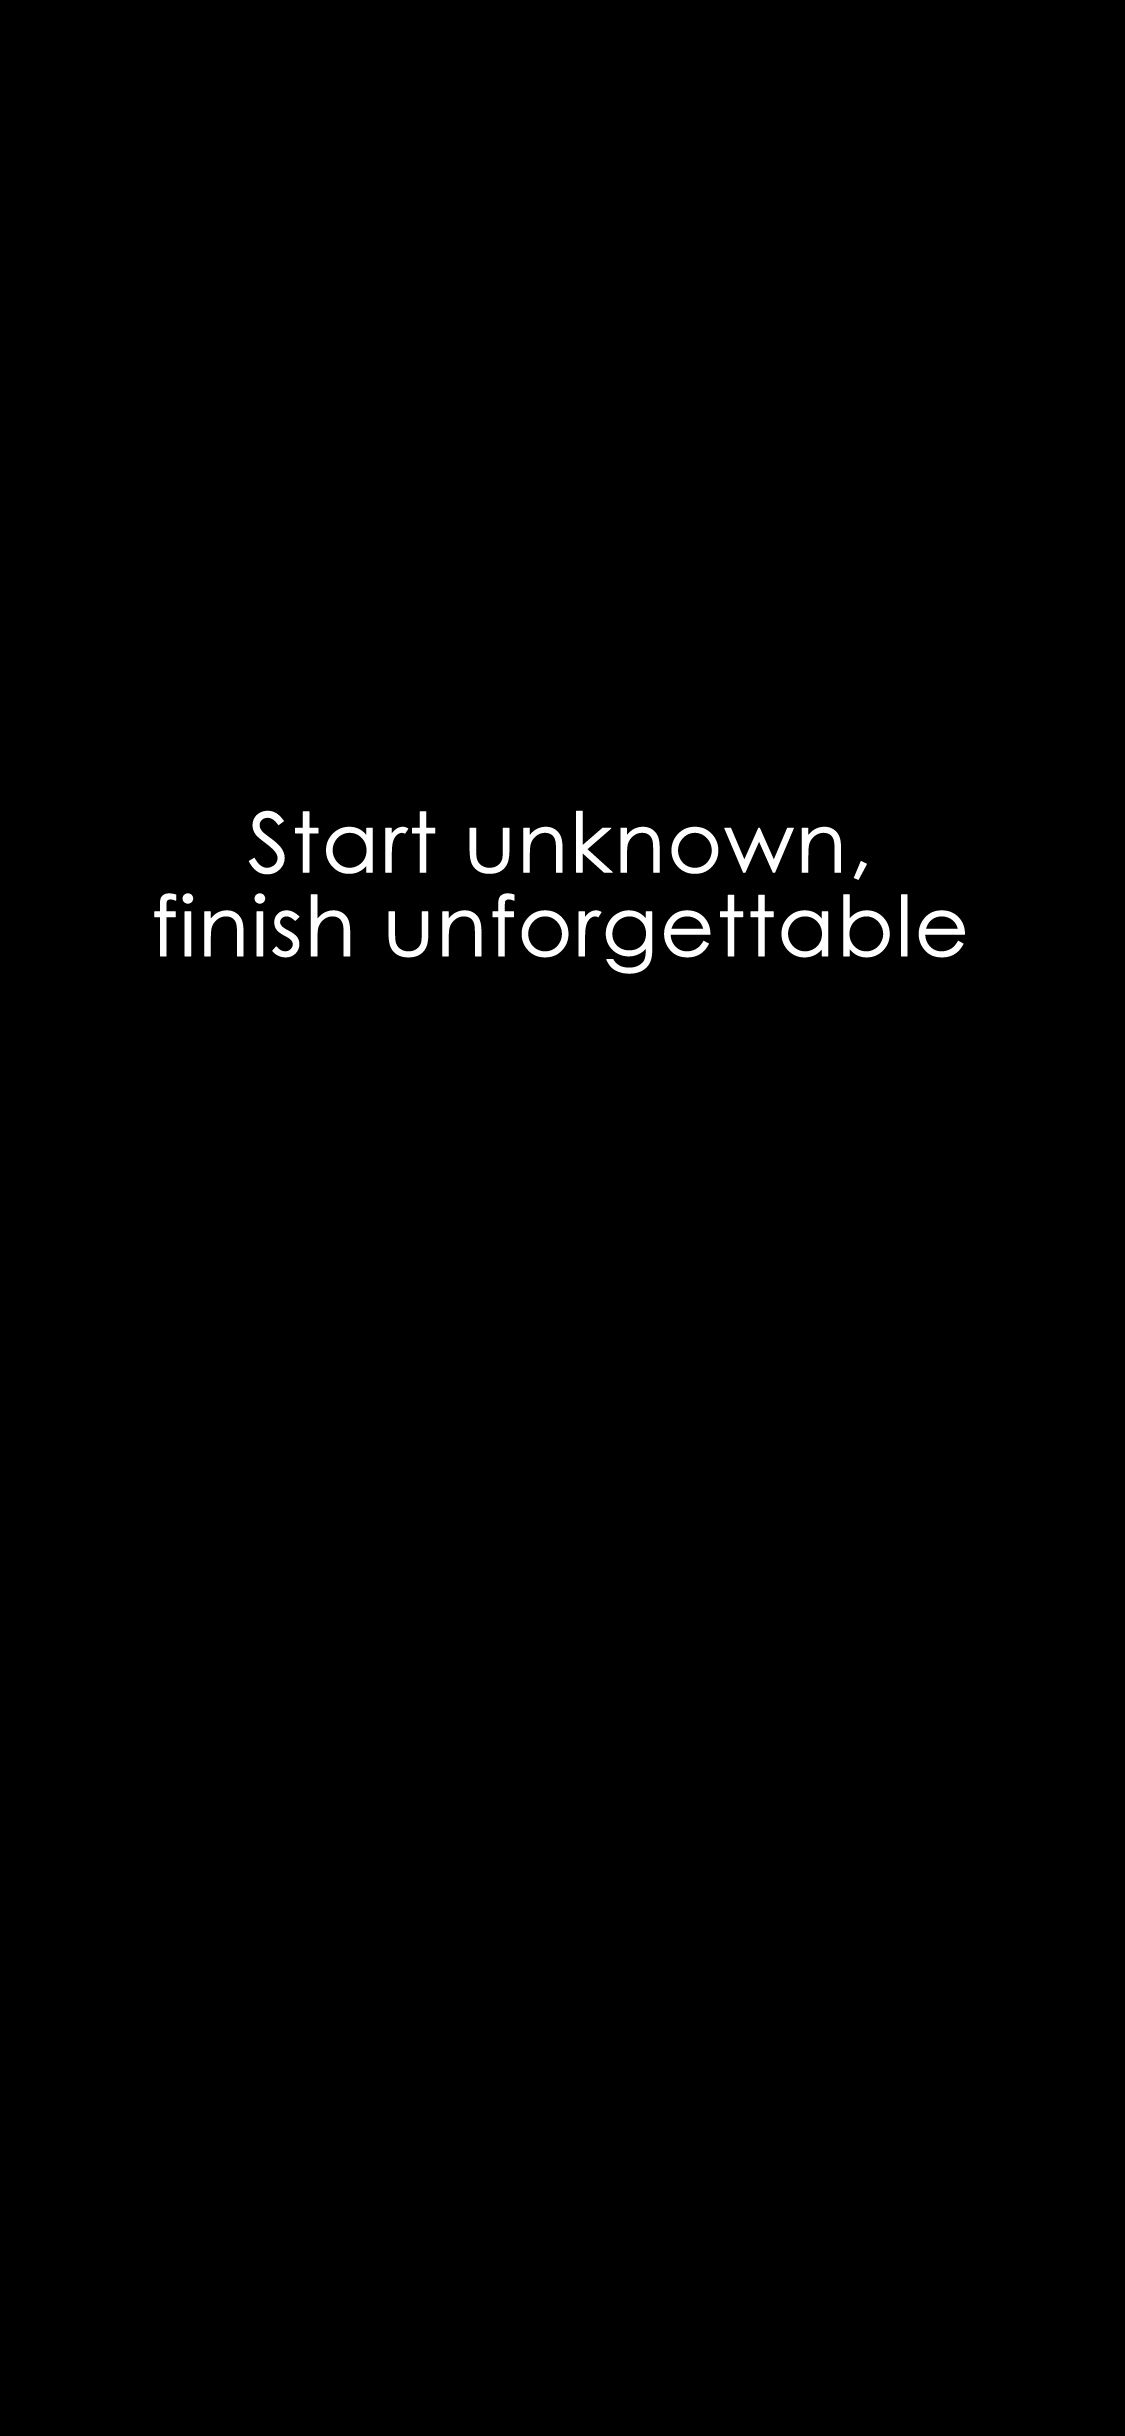 Start Unknown Finish Unforgettable Iphonex Wallpaper